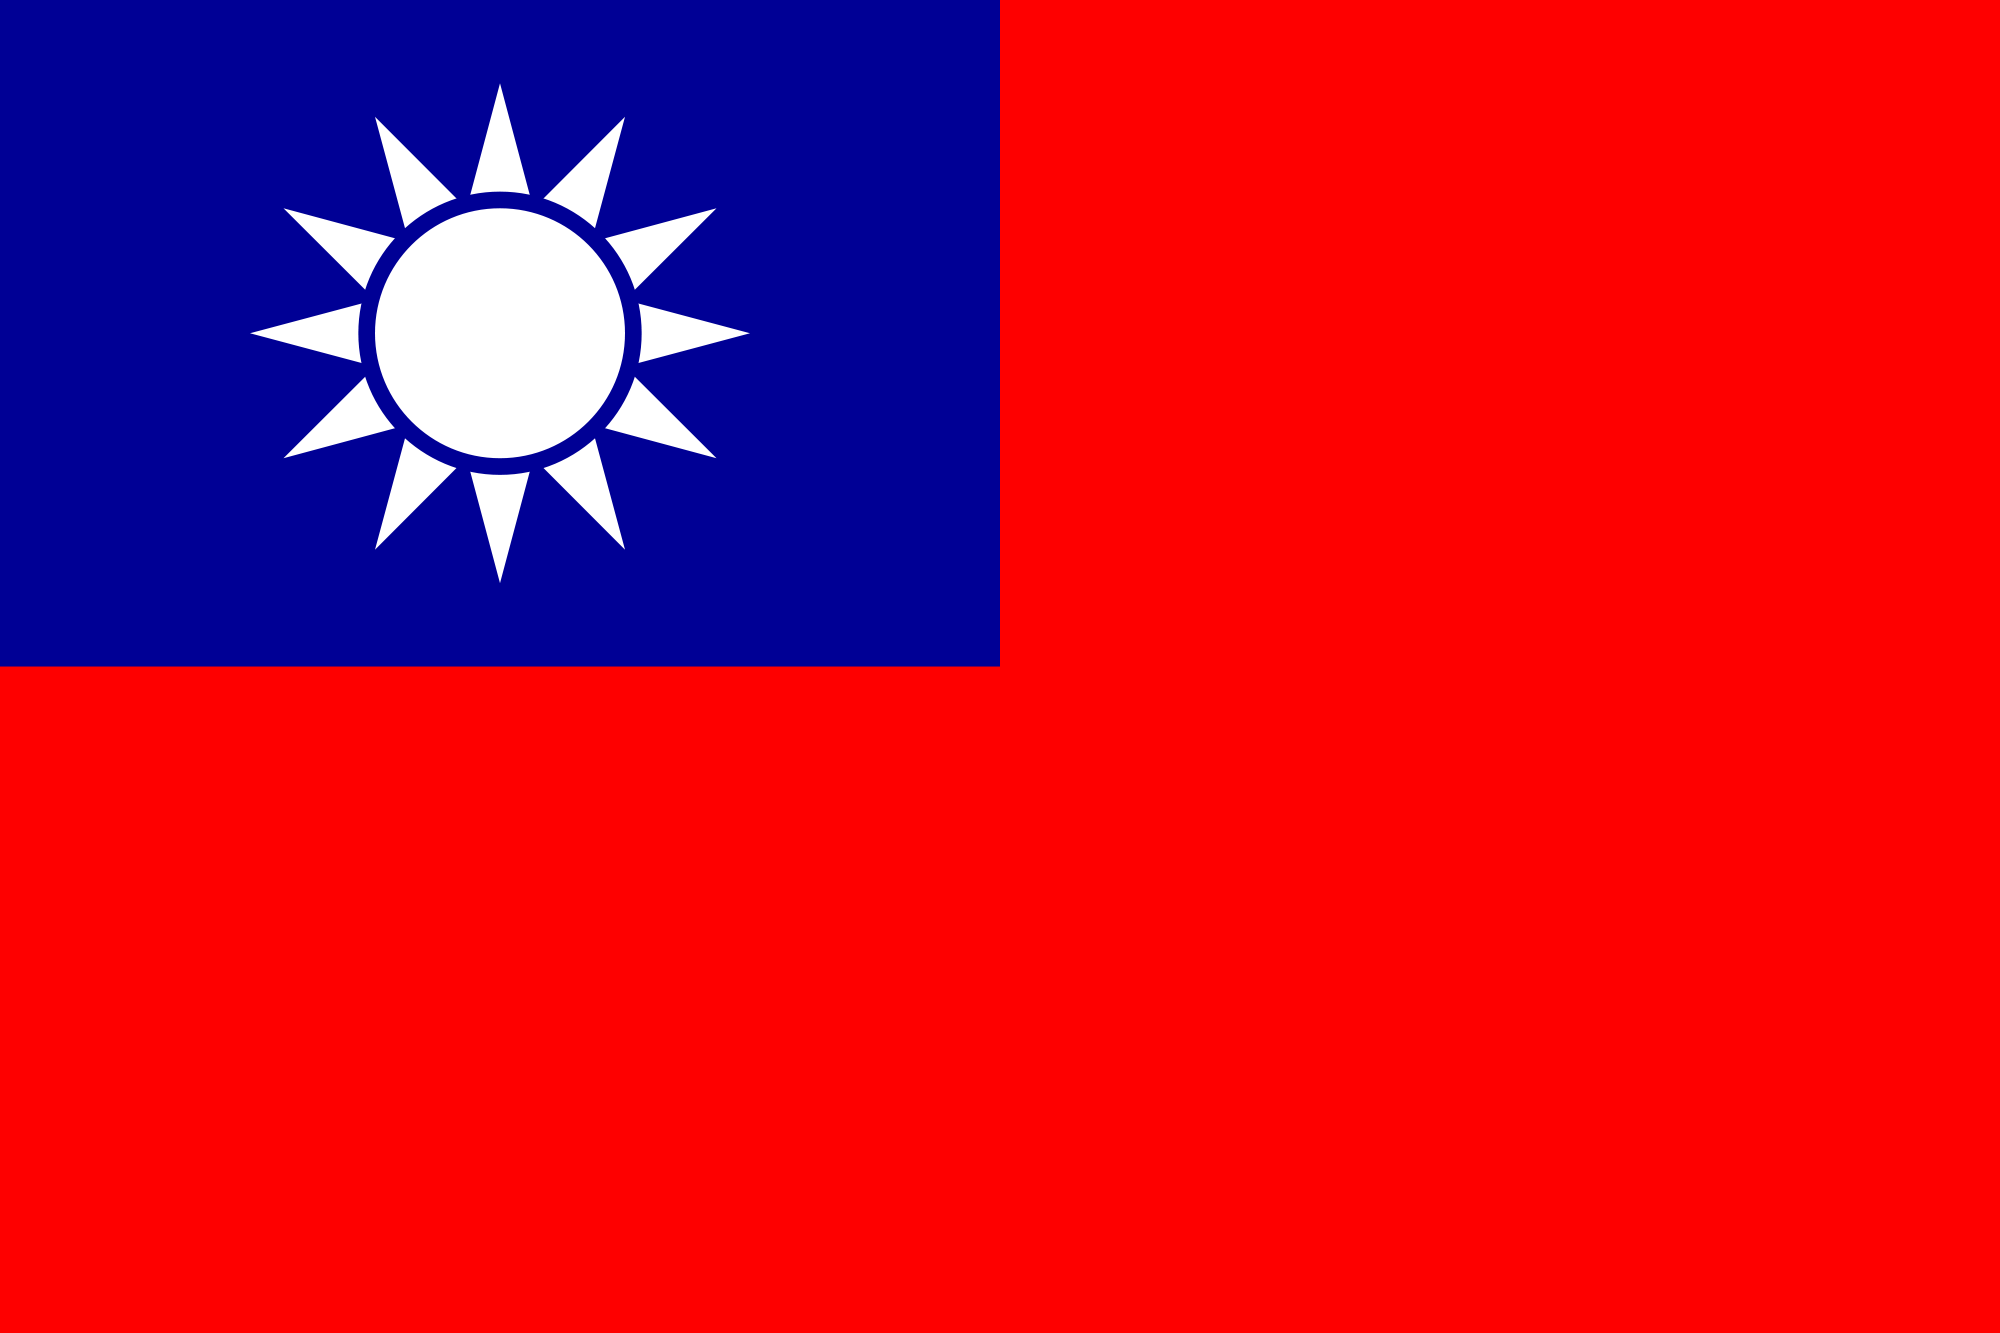 File:Flag of the Taiwan.png